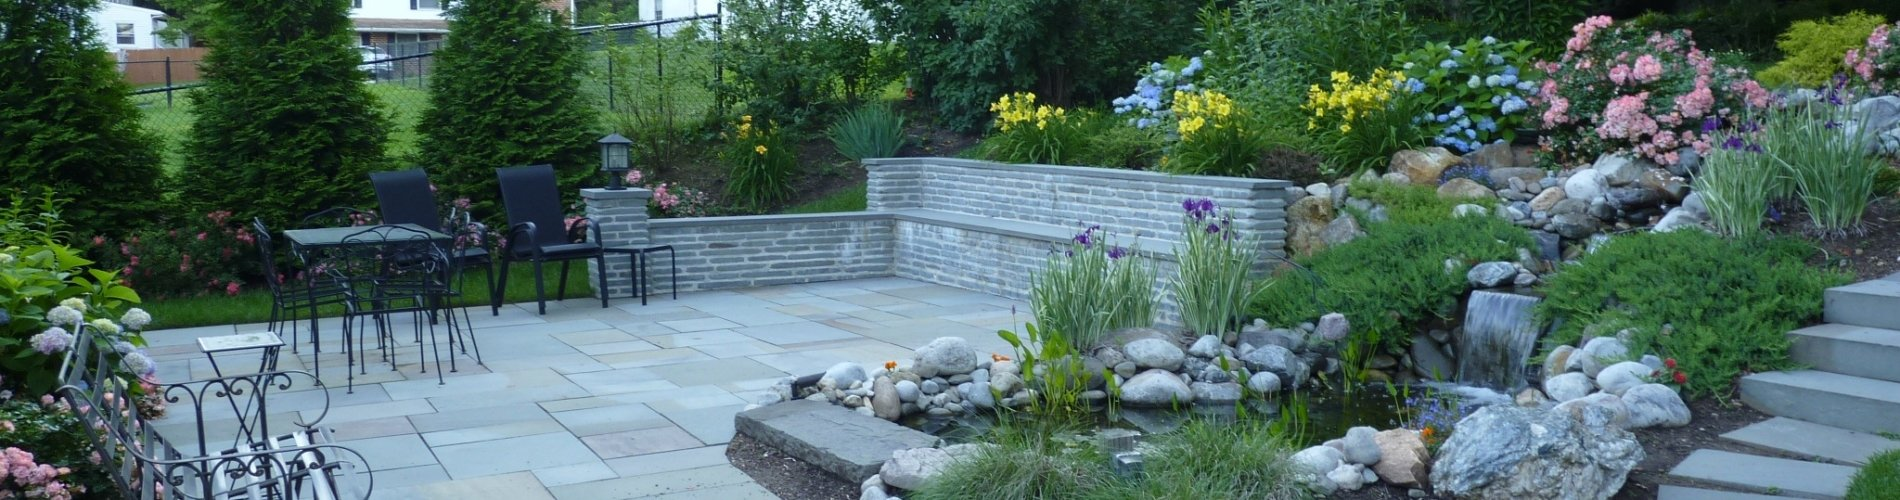 landscaping outdoor lighting u0026 hardscaping designs newtown square